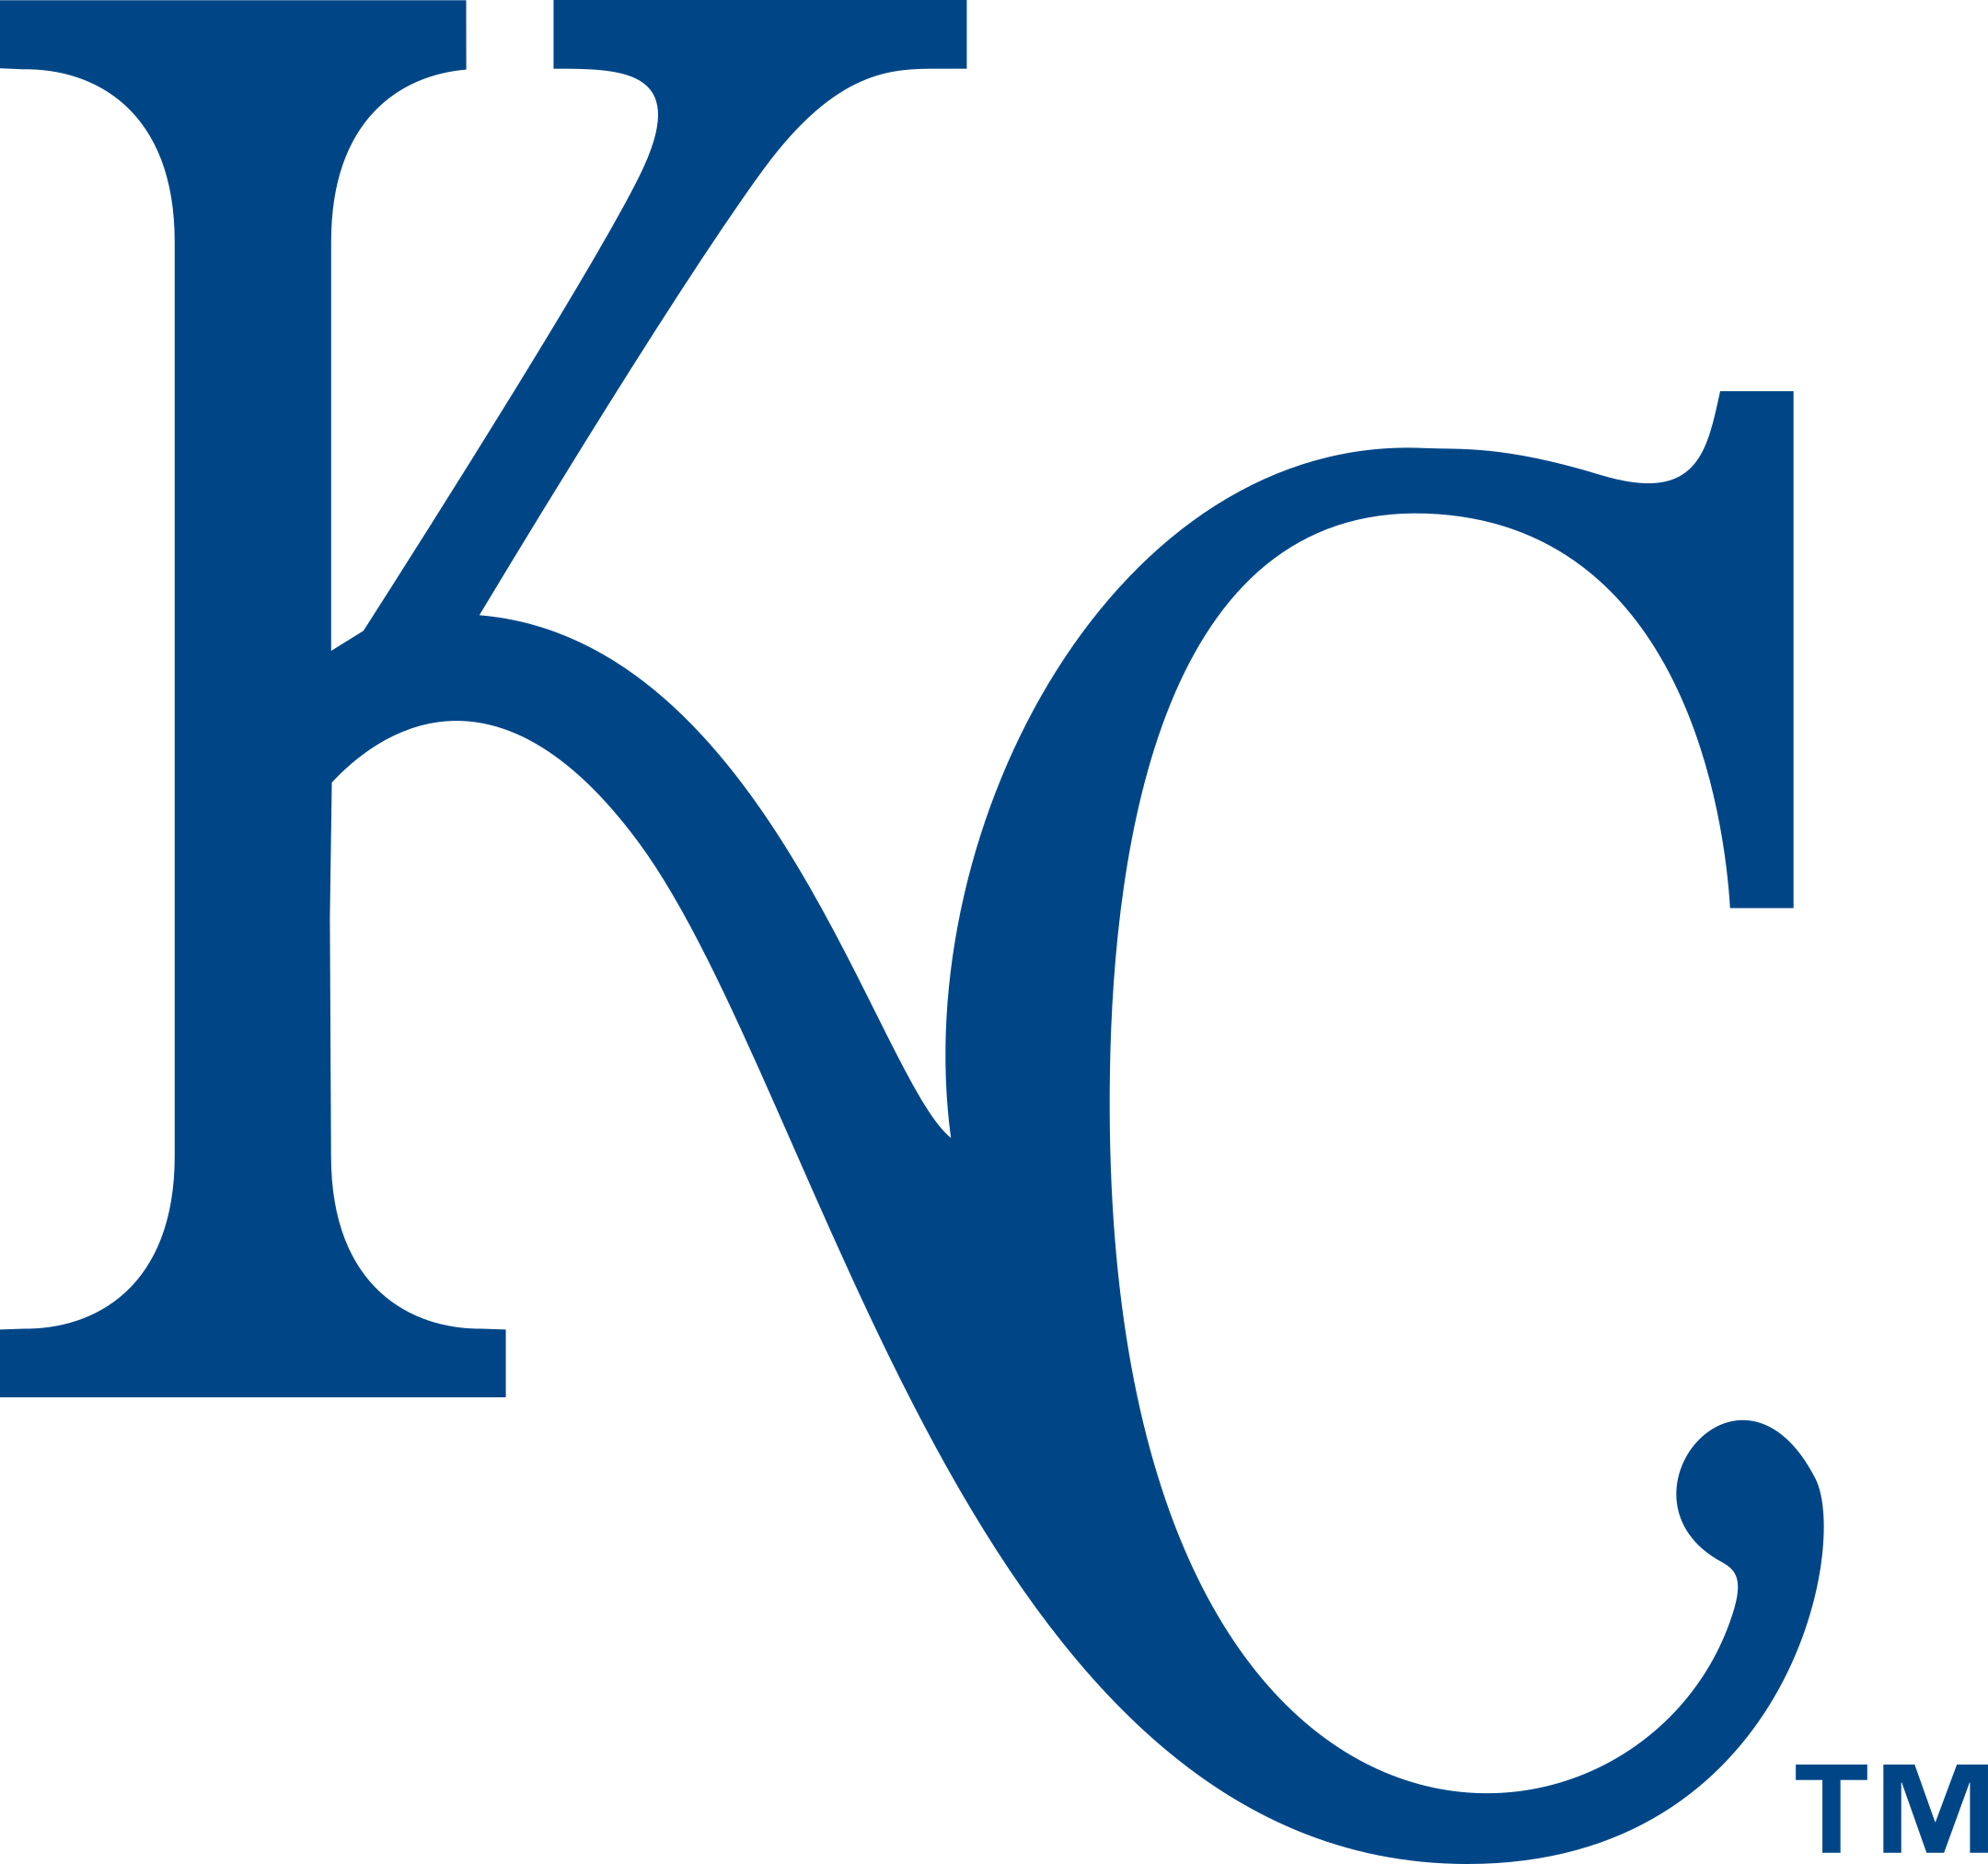 kansas city royals logo 1 - Kansas City Royals Logo